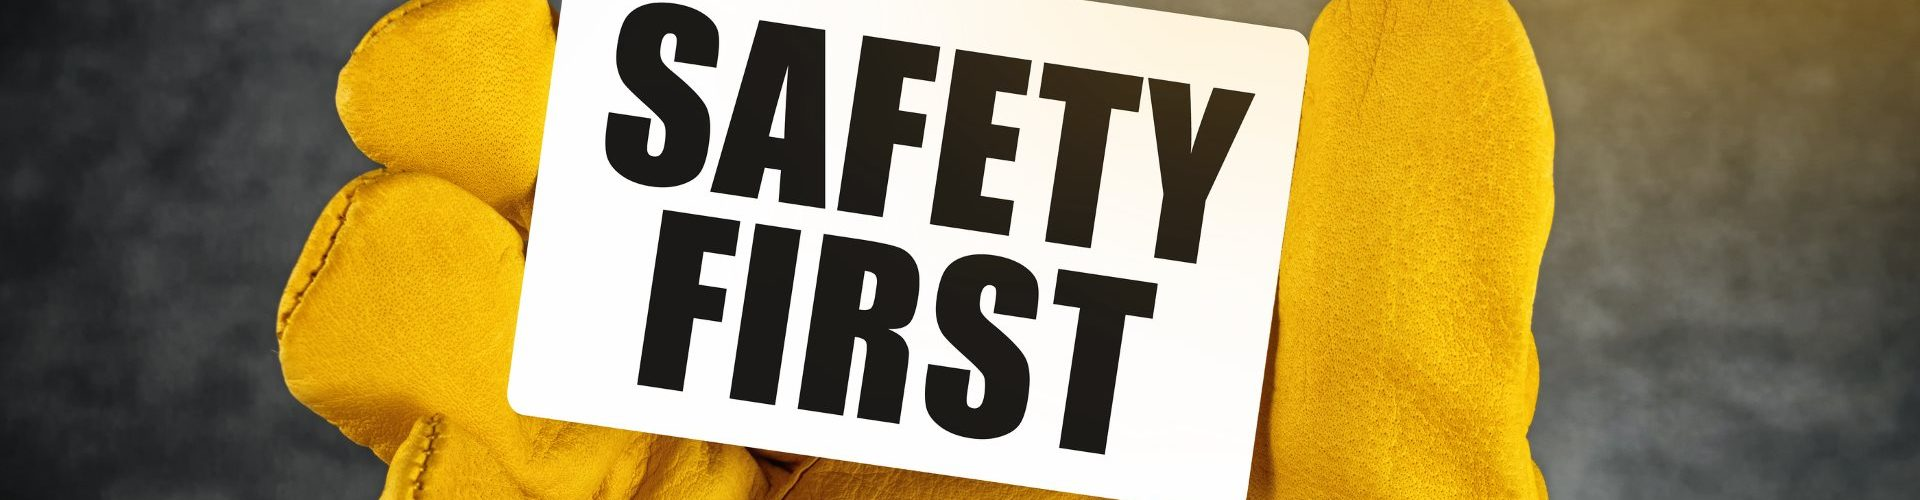 General Health & Safety (VCA)